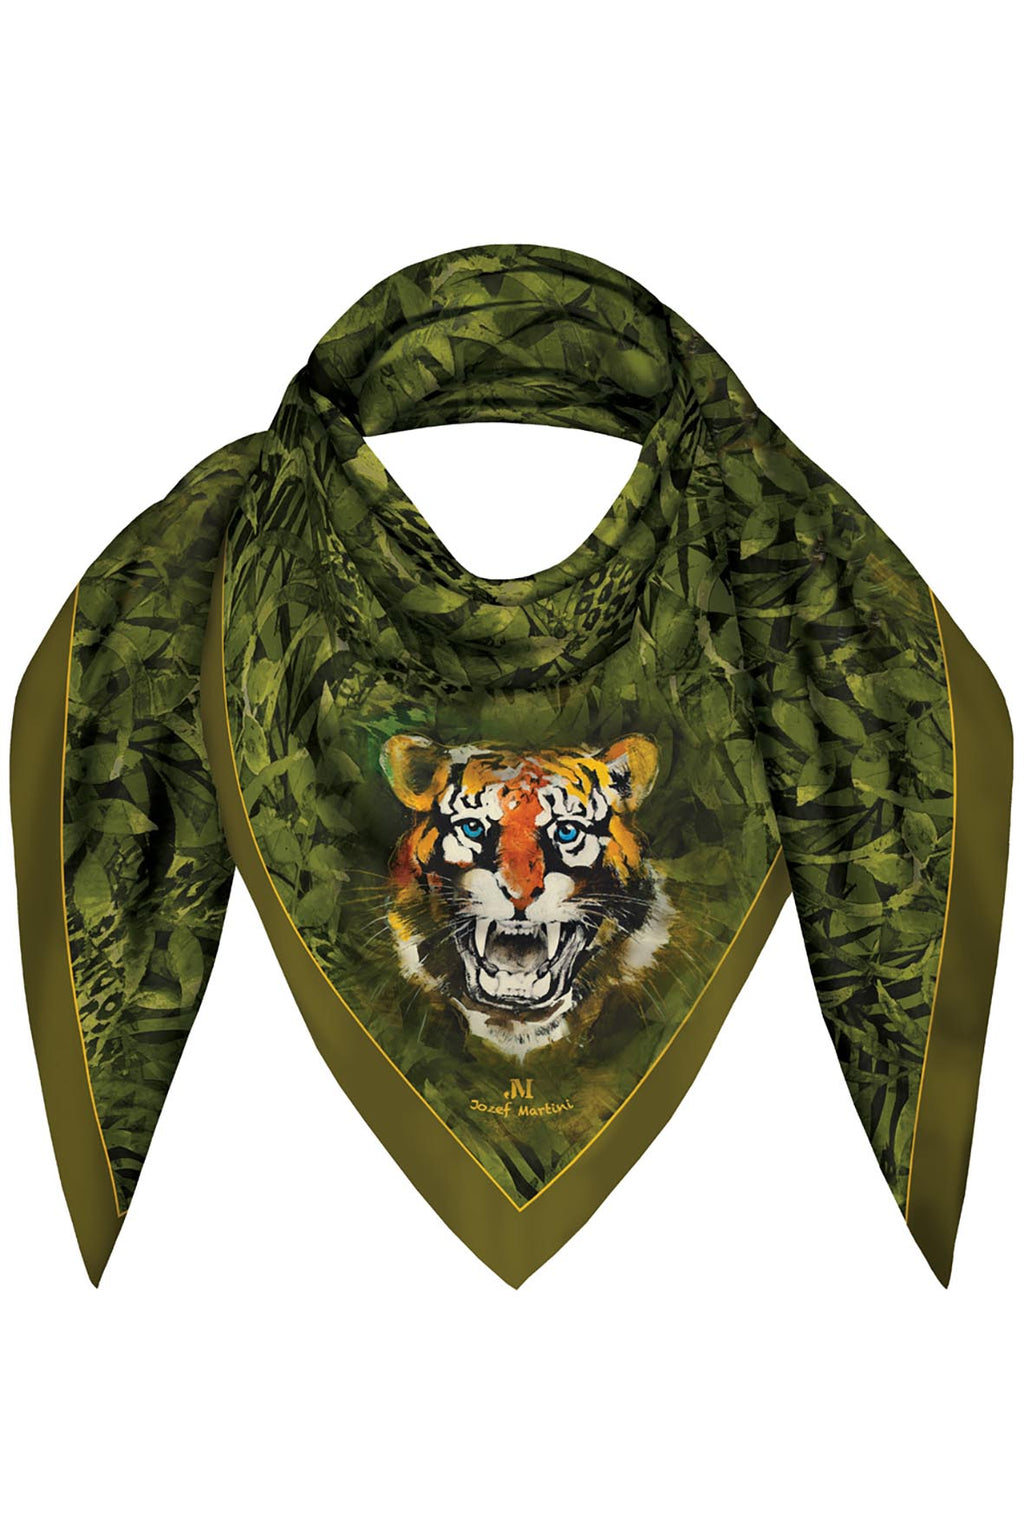 FOULARD 90 JUNGLE TIGER JM PRINT SILK